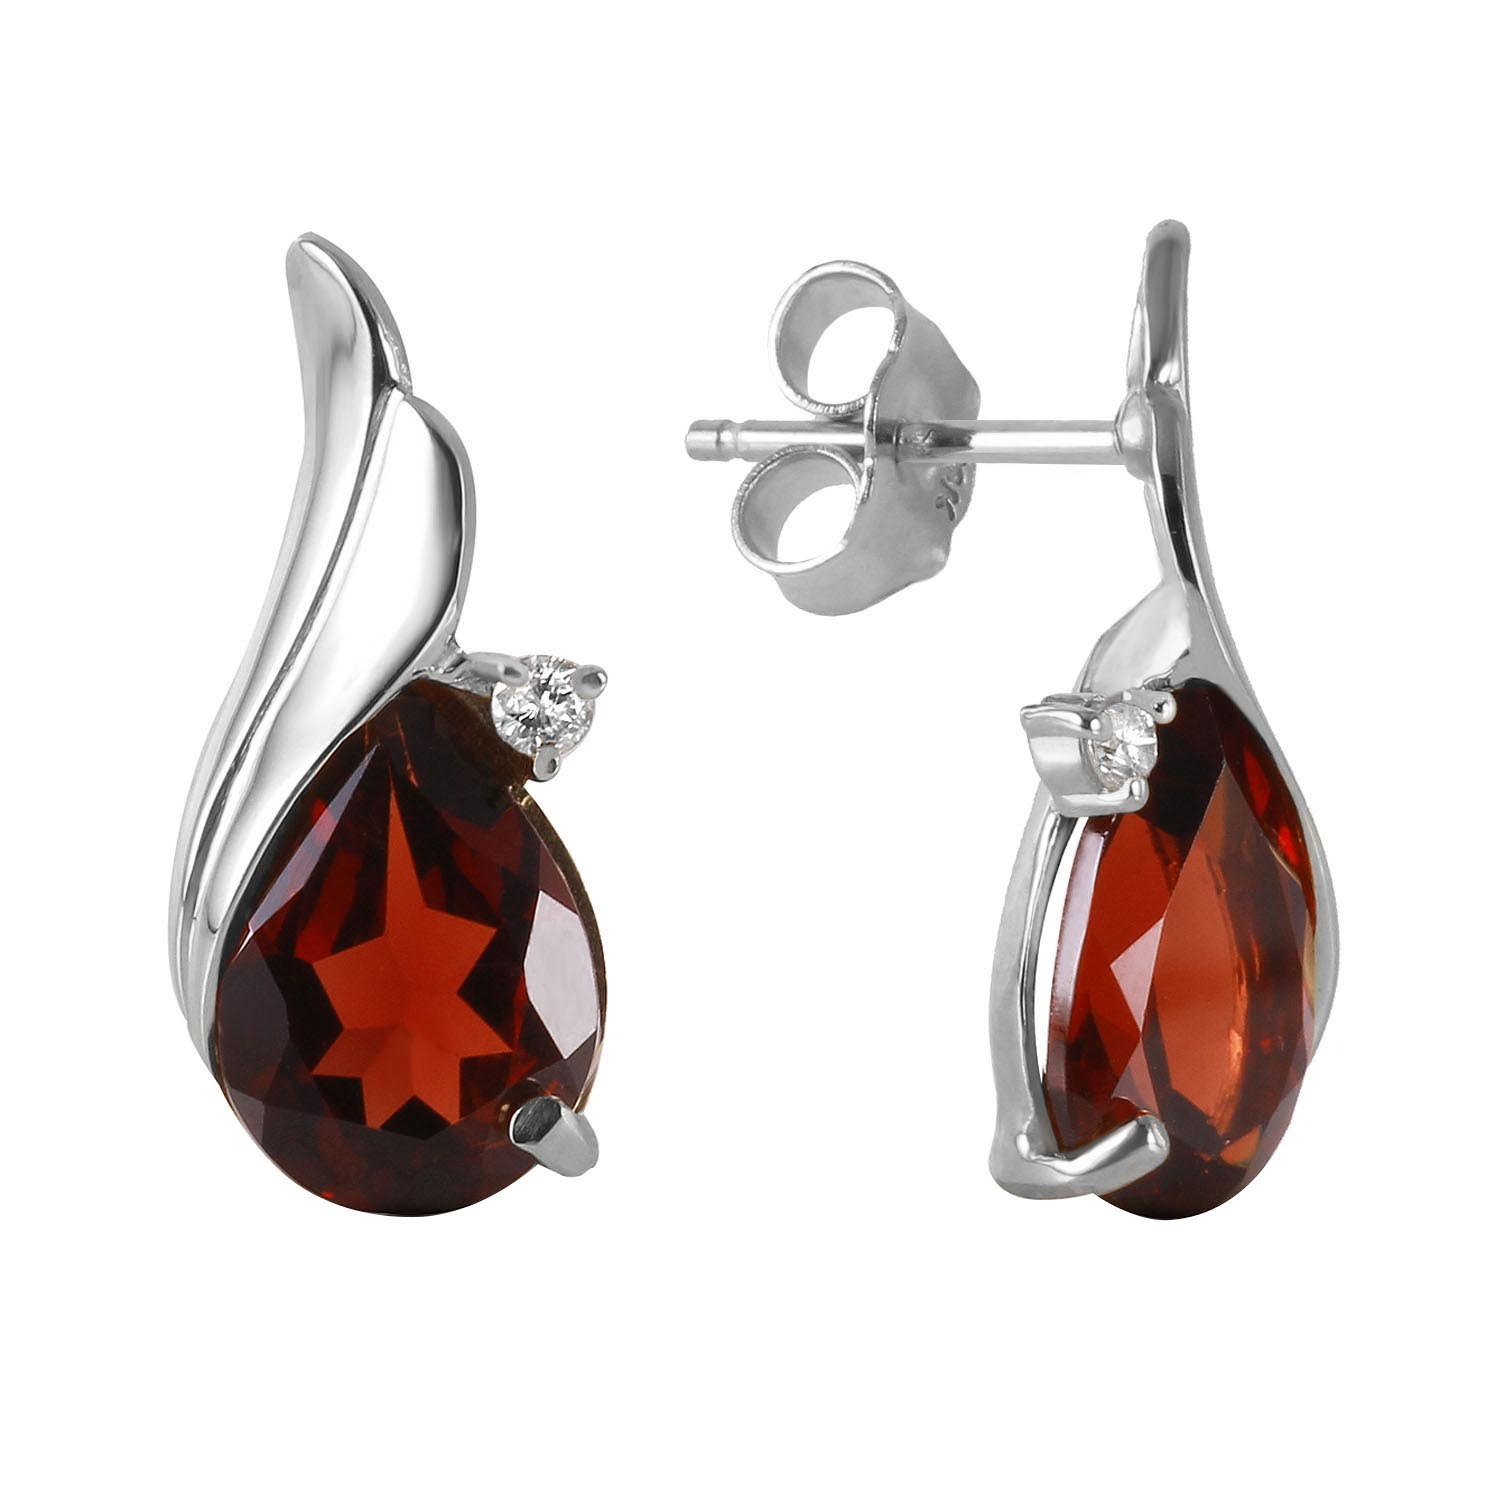 Garnet and Diamond Stud Earrings 4.0ctw in 9ct White Gold